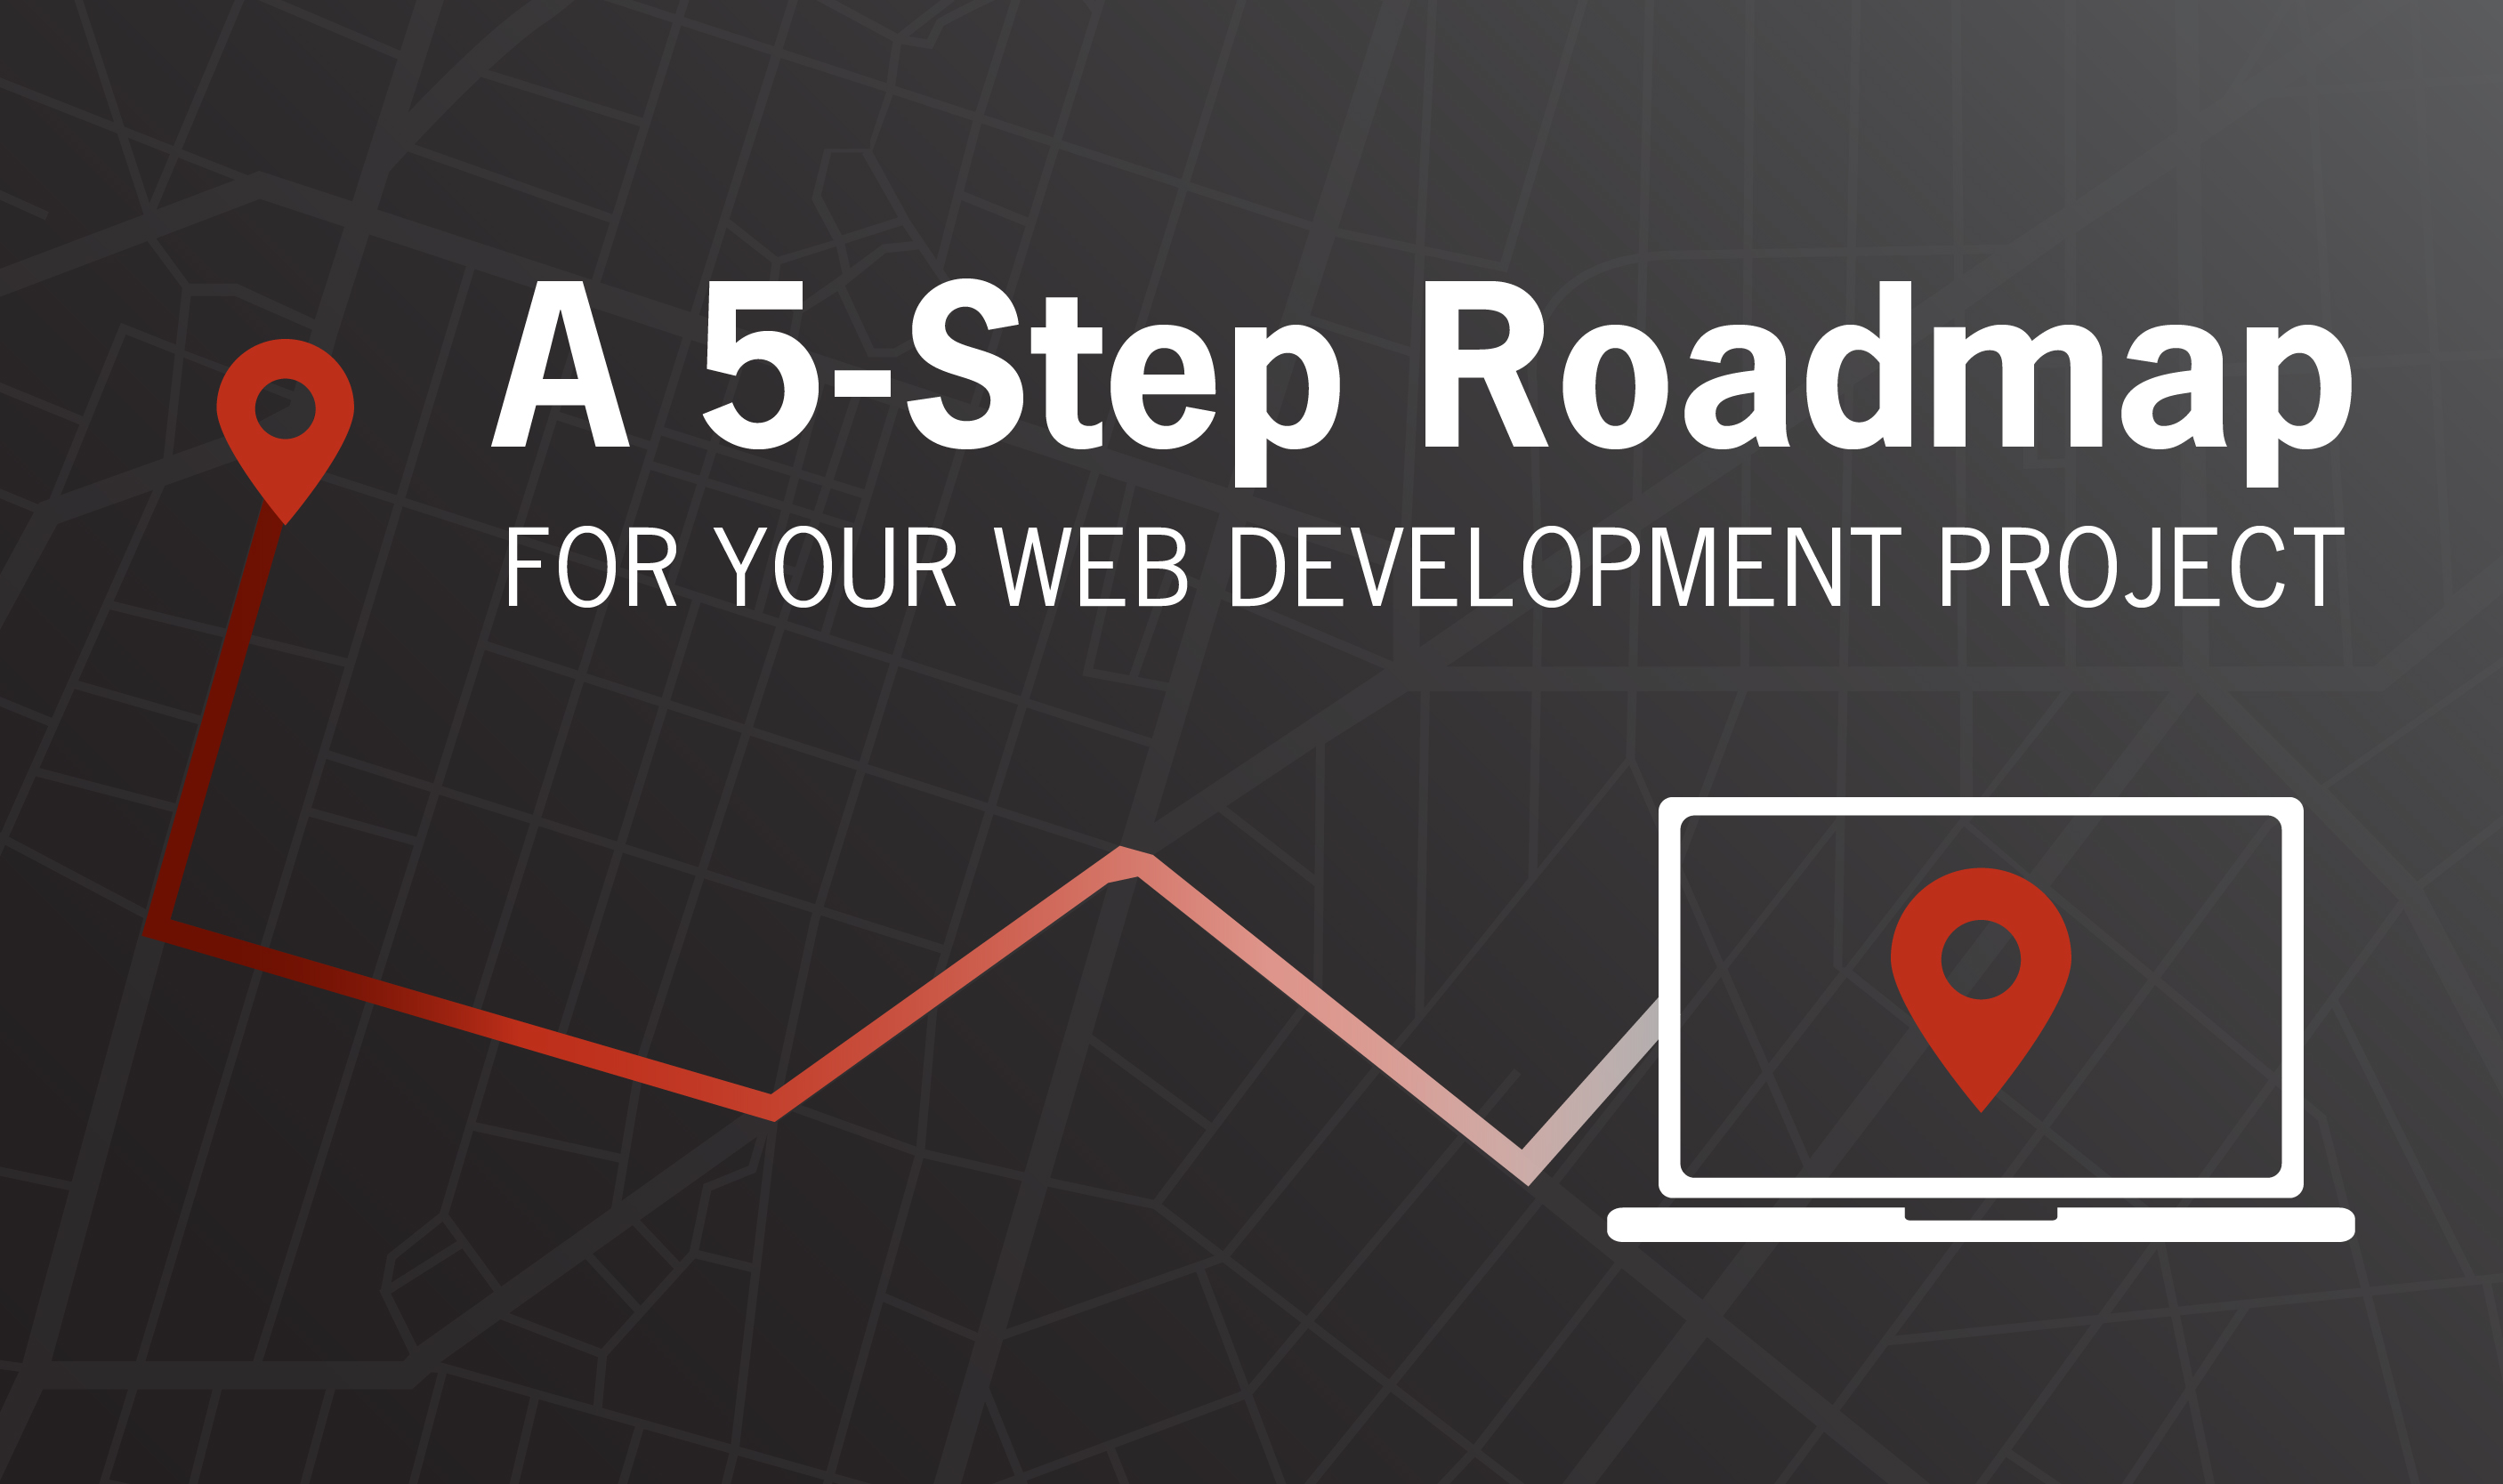 a 5-step roadmap for your web development project